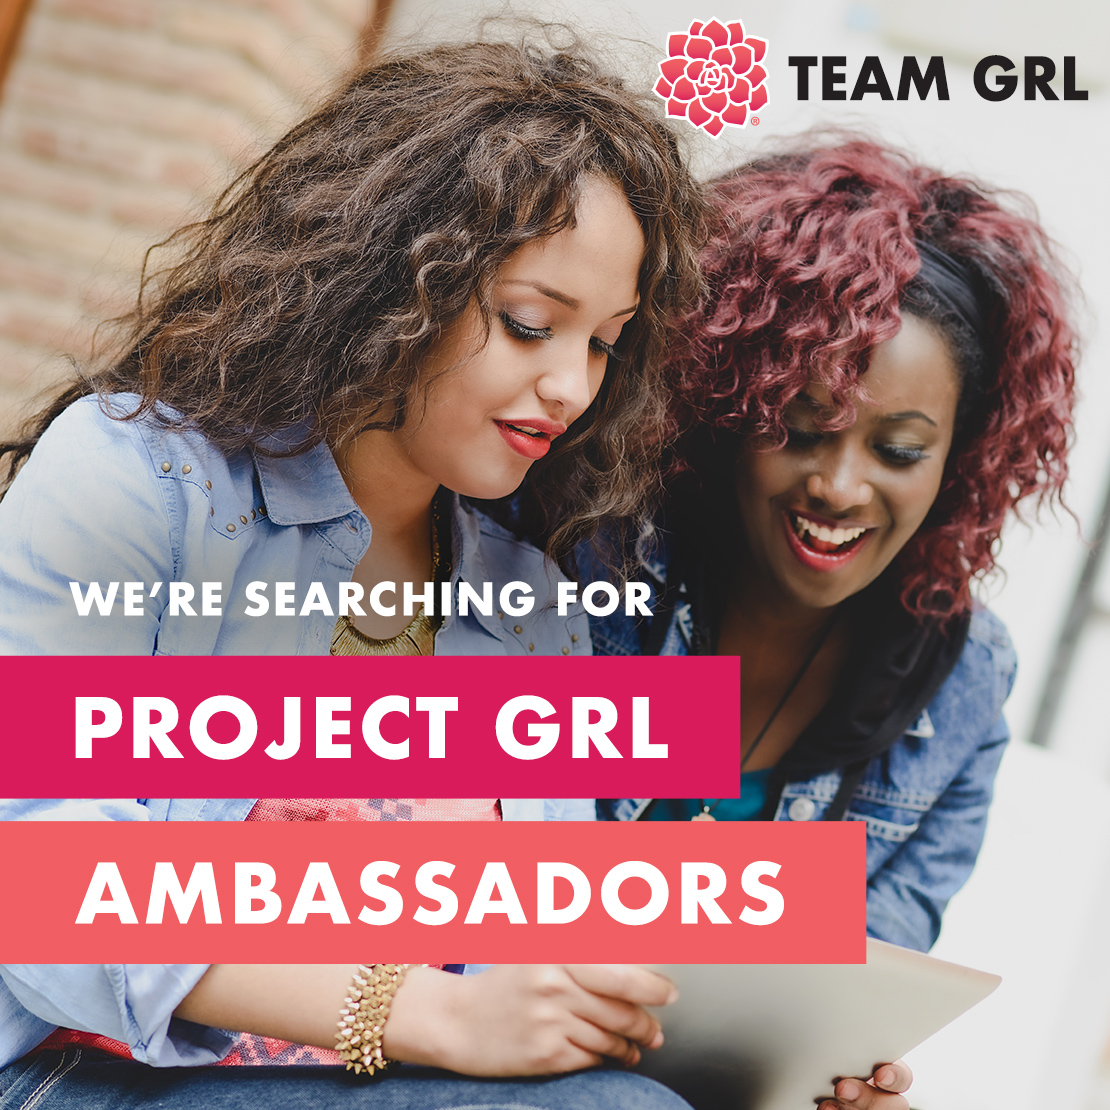 Joyce Meyer's: Project GRL - Join Team GRL